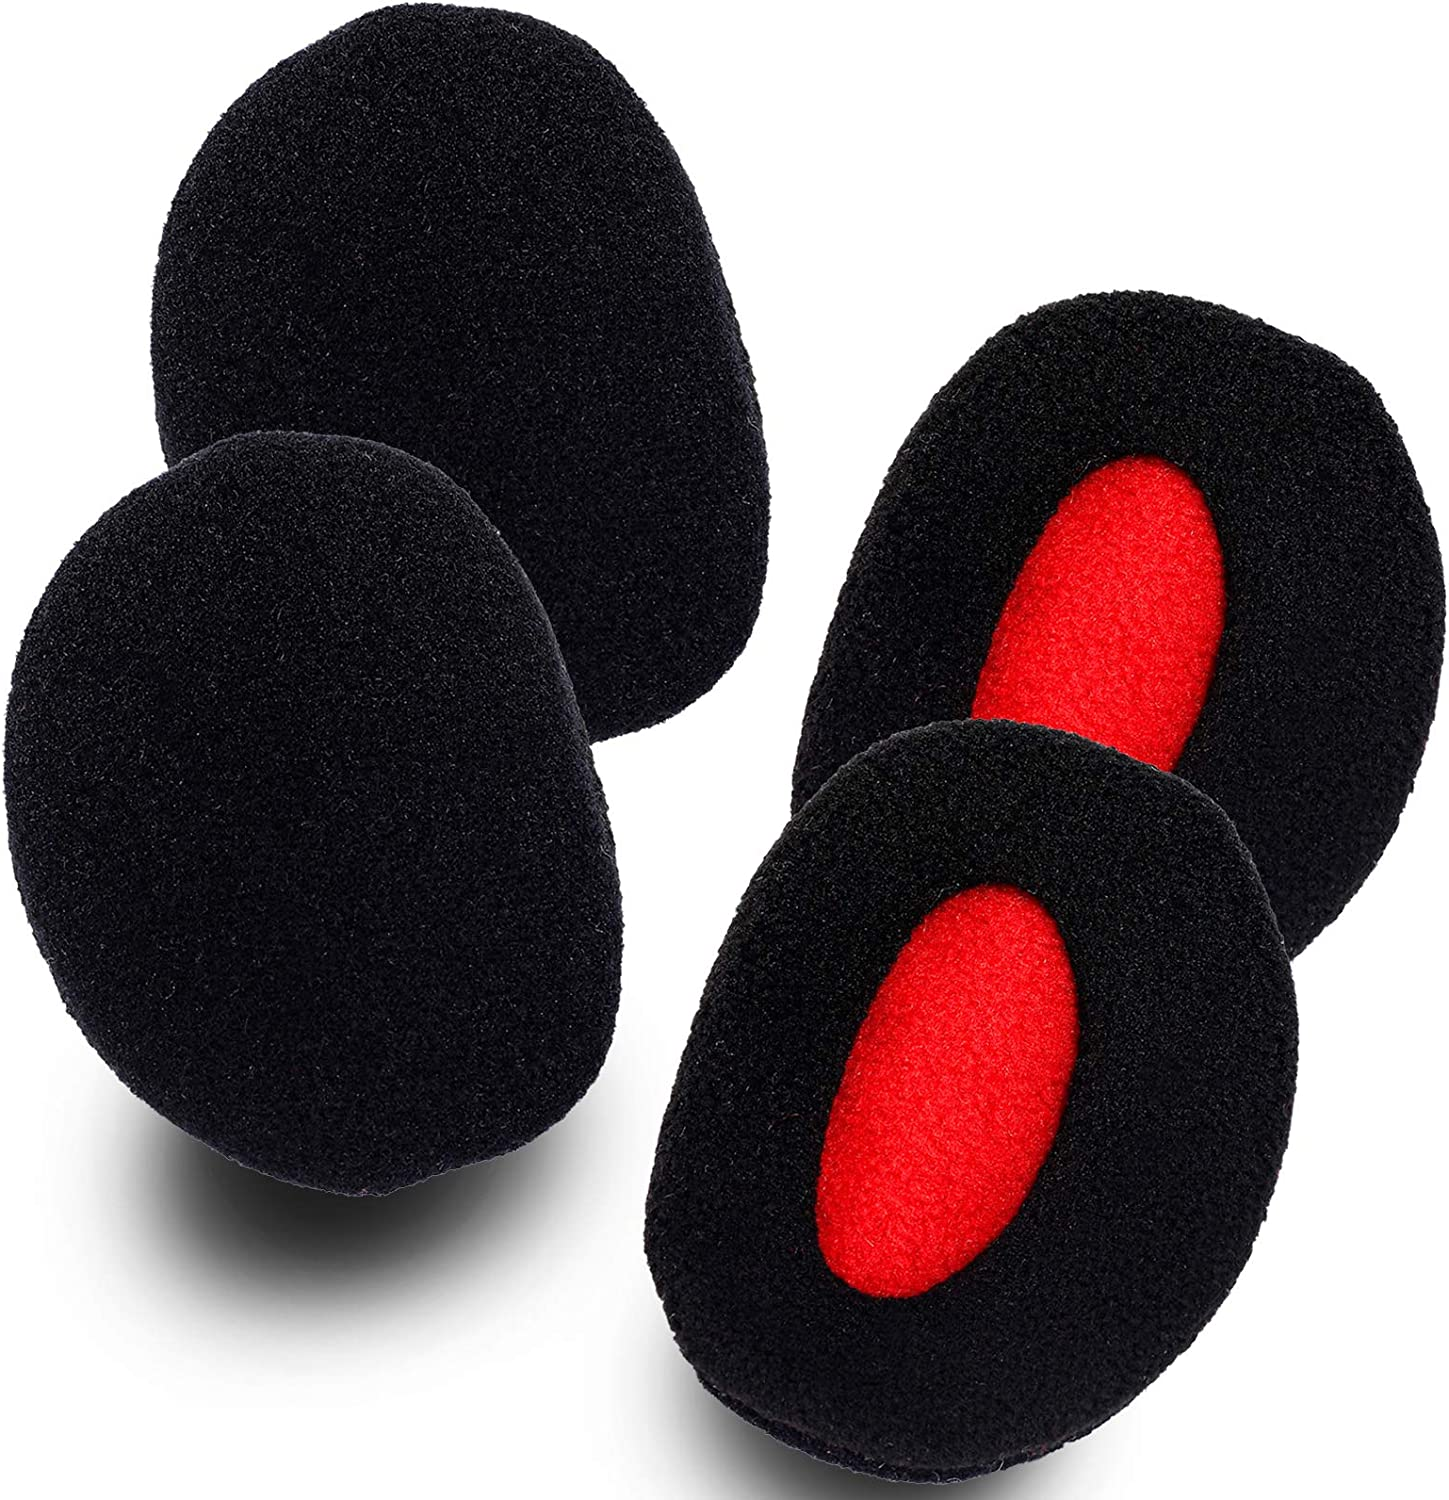 2 Pairs Ear Muffs, Fleece Bandless Ear Warmers with Thinsulate Winter Ear Covers for Men Women